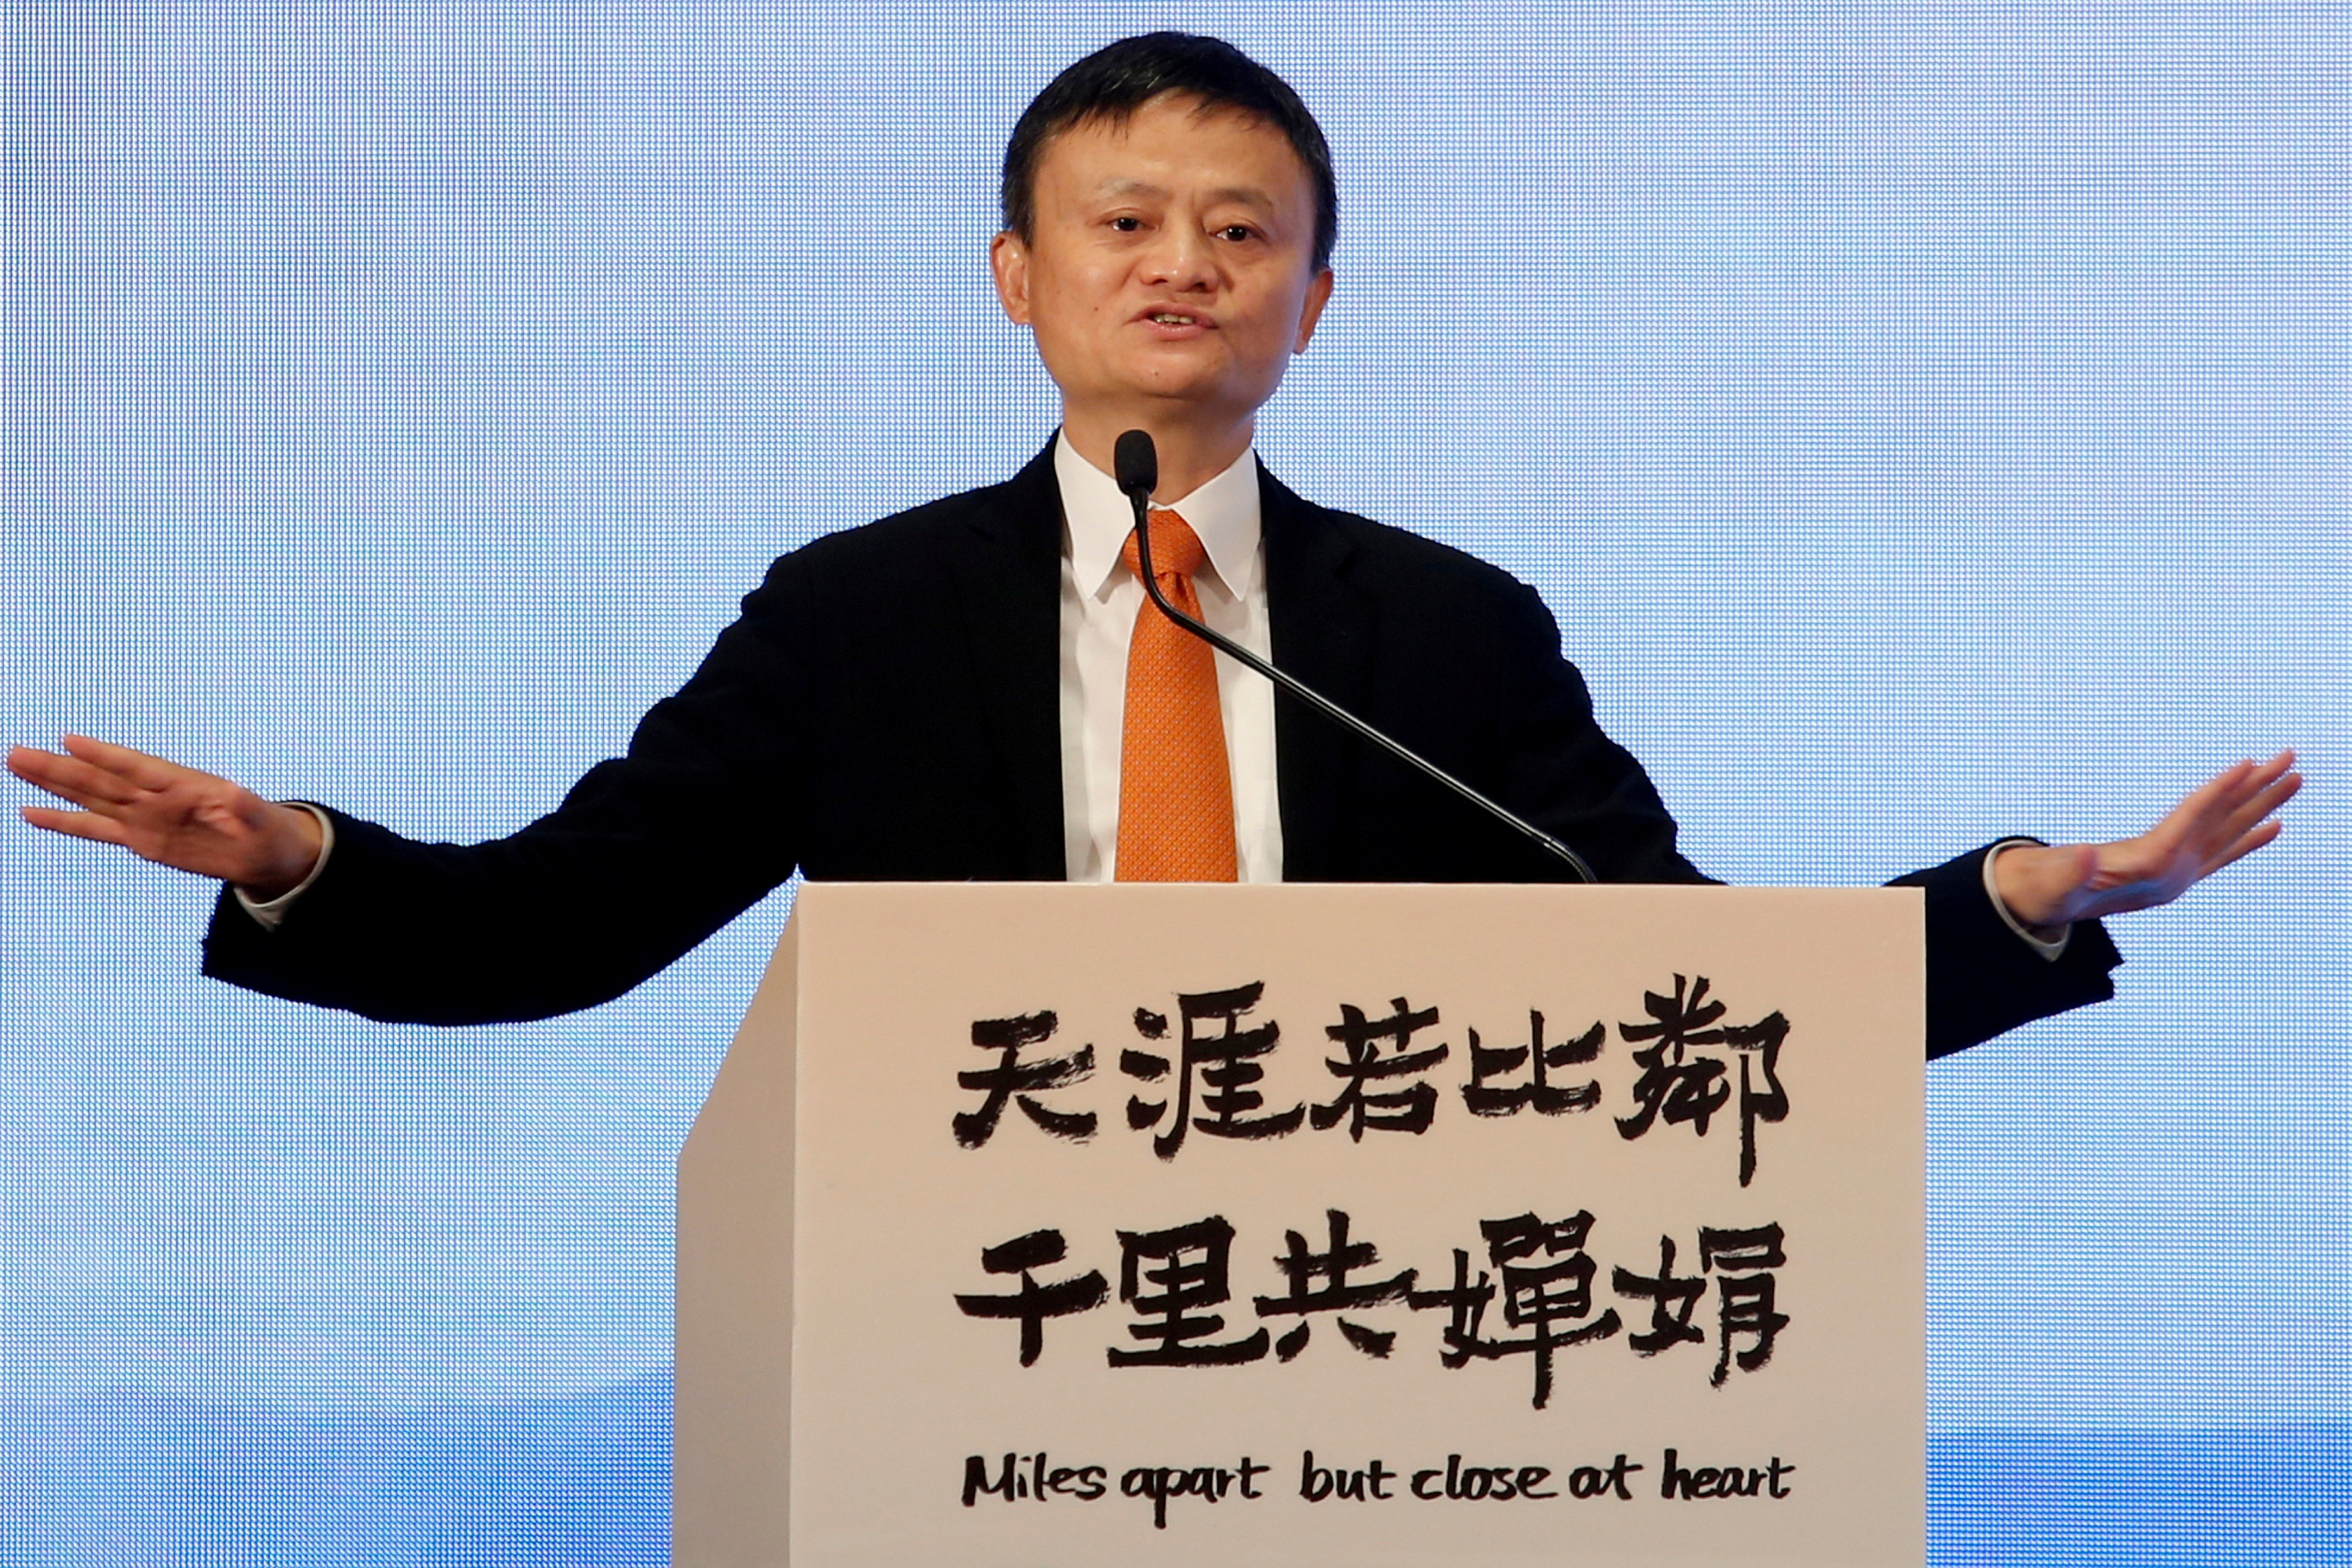 Alibaba's Jack Ma to Step Down in One Year, Hand Baton to CEO Zhang